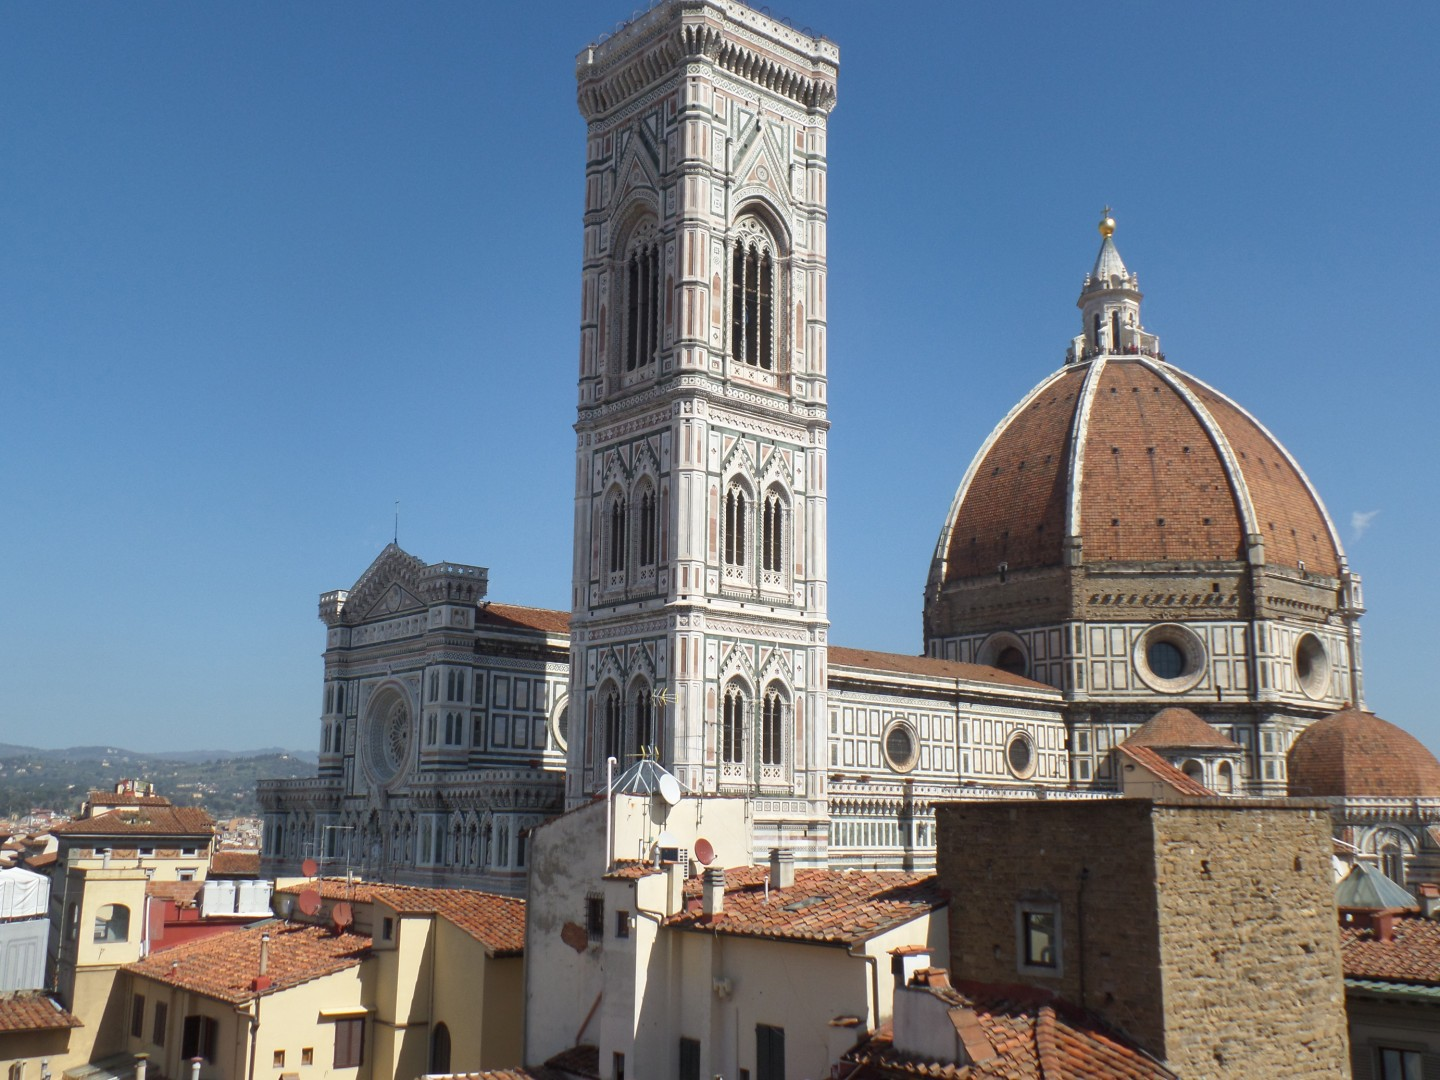 piazza del duomo florence history italy - photo#19